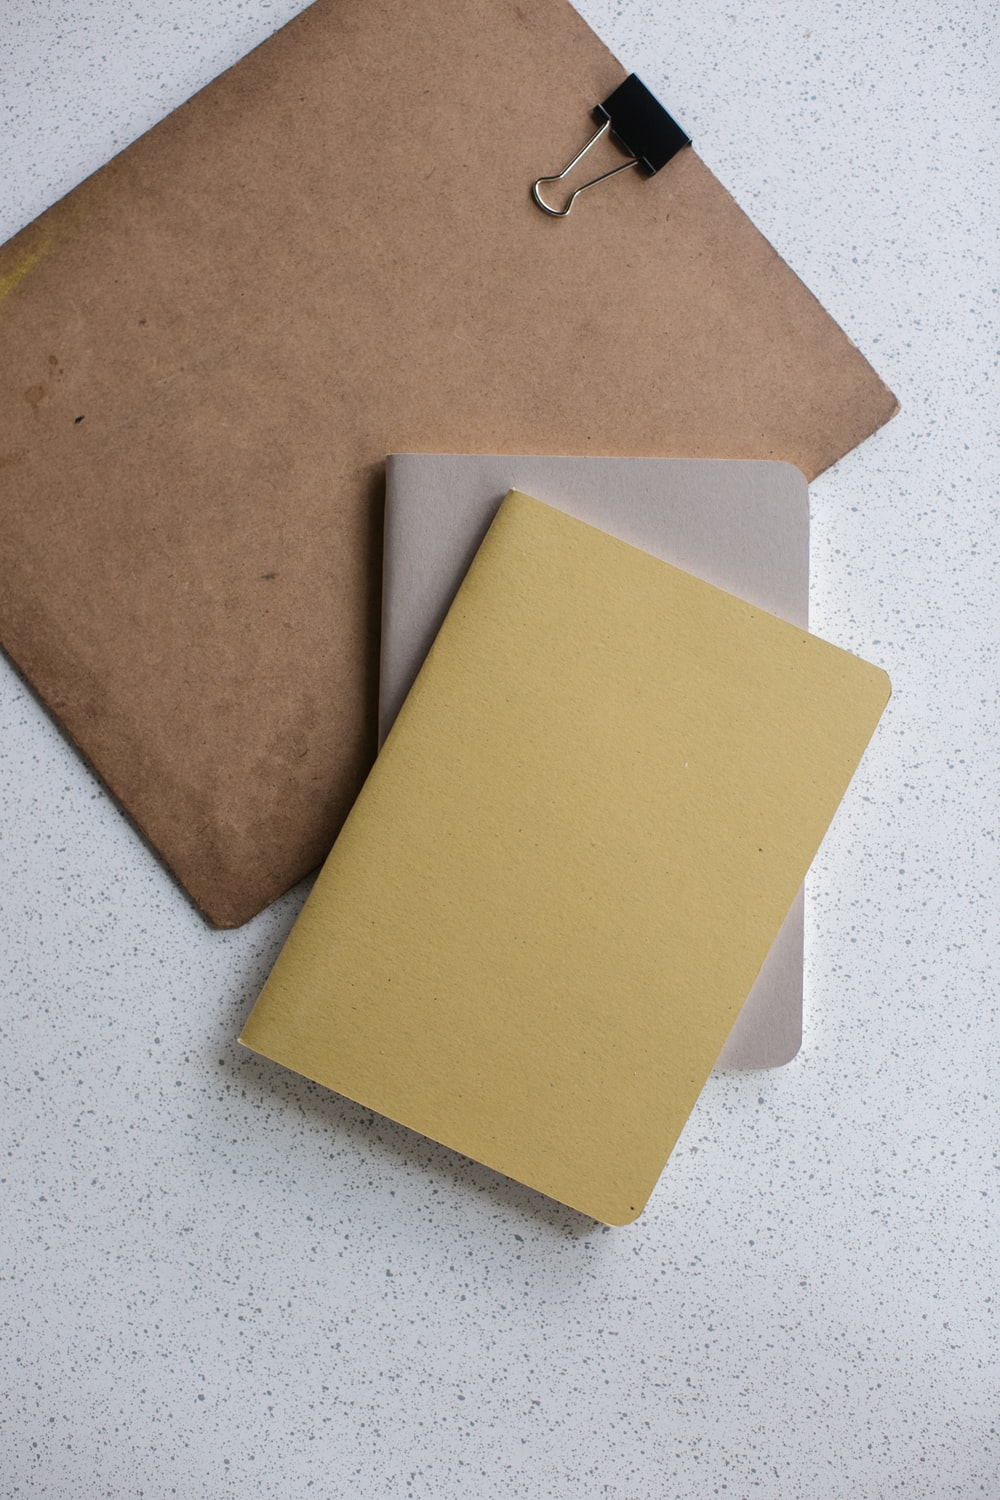 yellow and gray softbound book near brown clip board